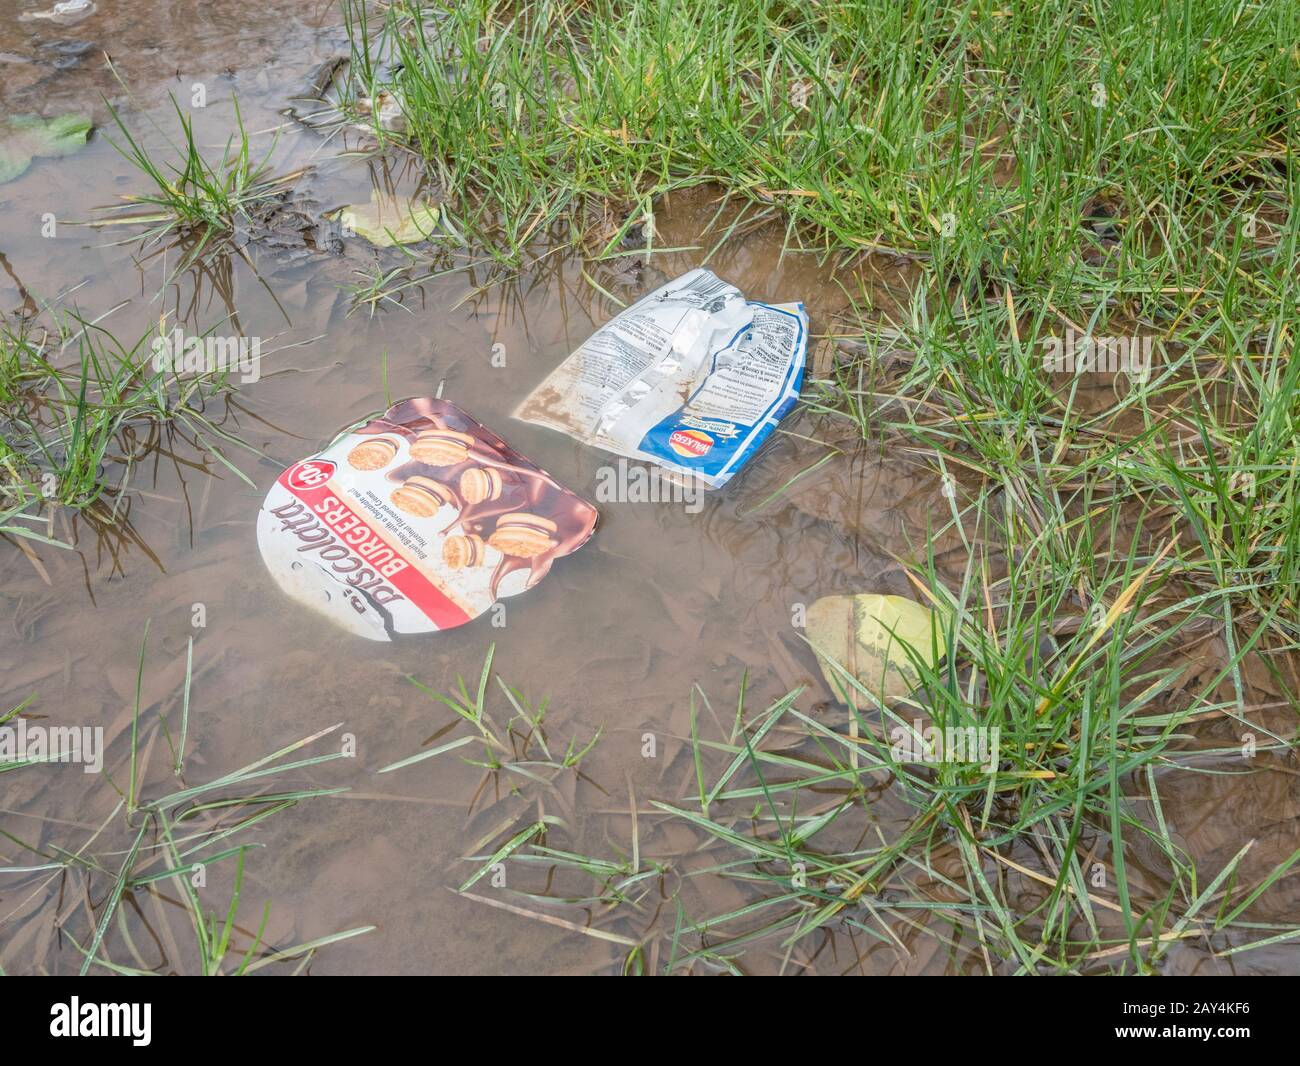 Empty plastic food packaging floating in water puddle after heavy winter rain. Metaphor war on plastic, plastic litter, problem food packaging. Stock Photo